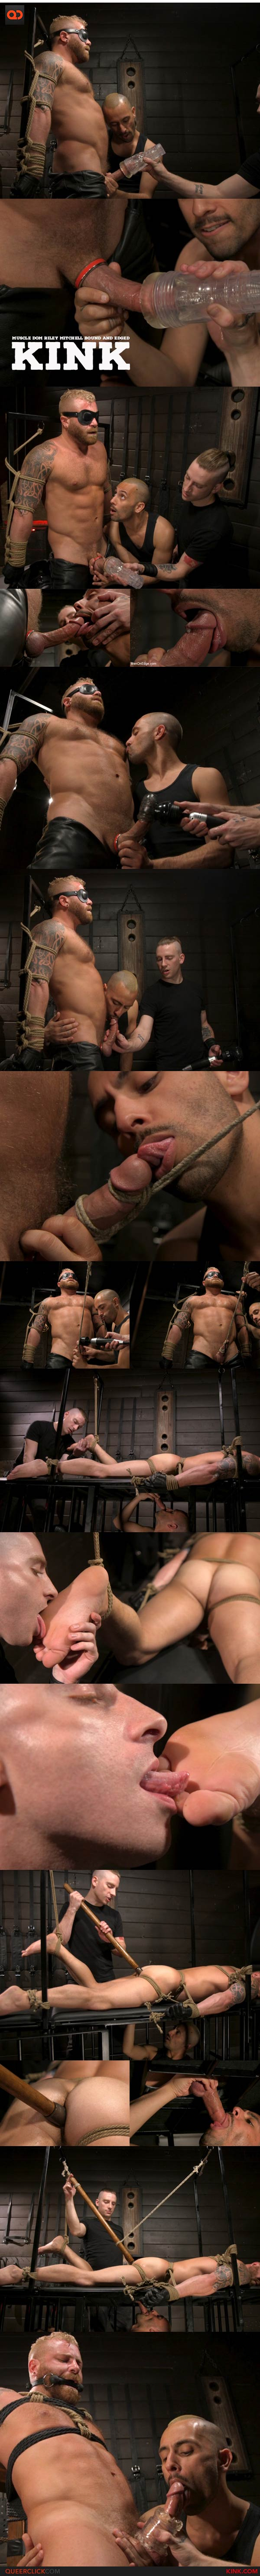 Kink: Muscle Dom Riley Mitchell Bound and Edged